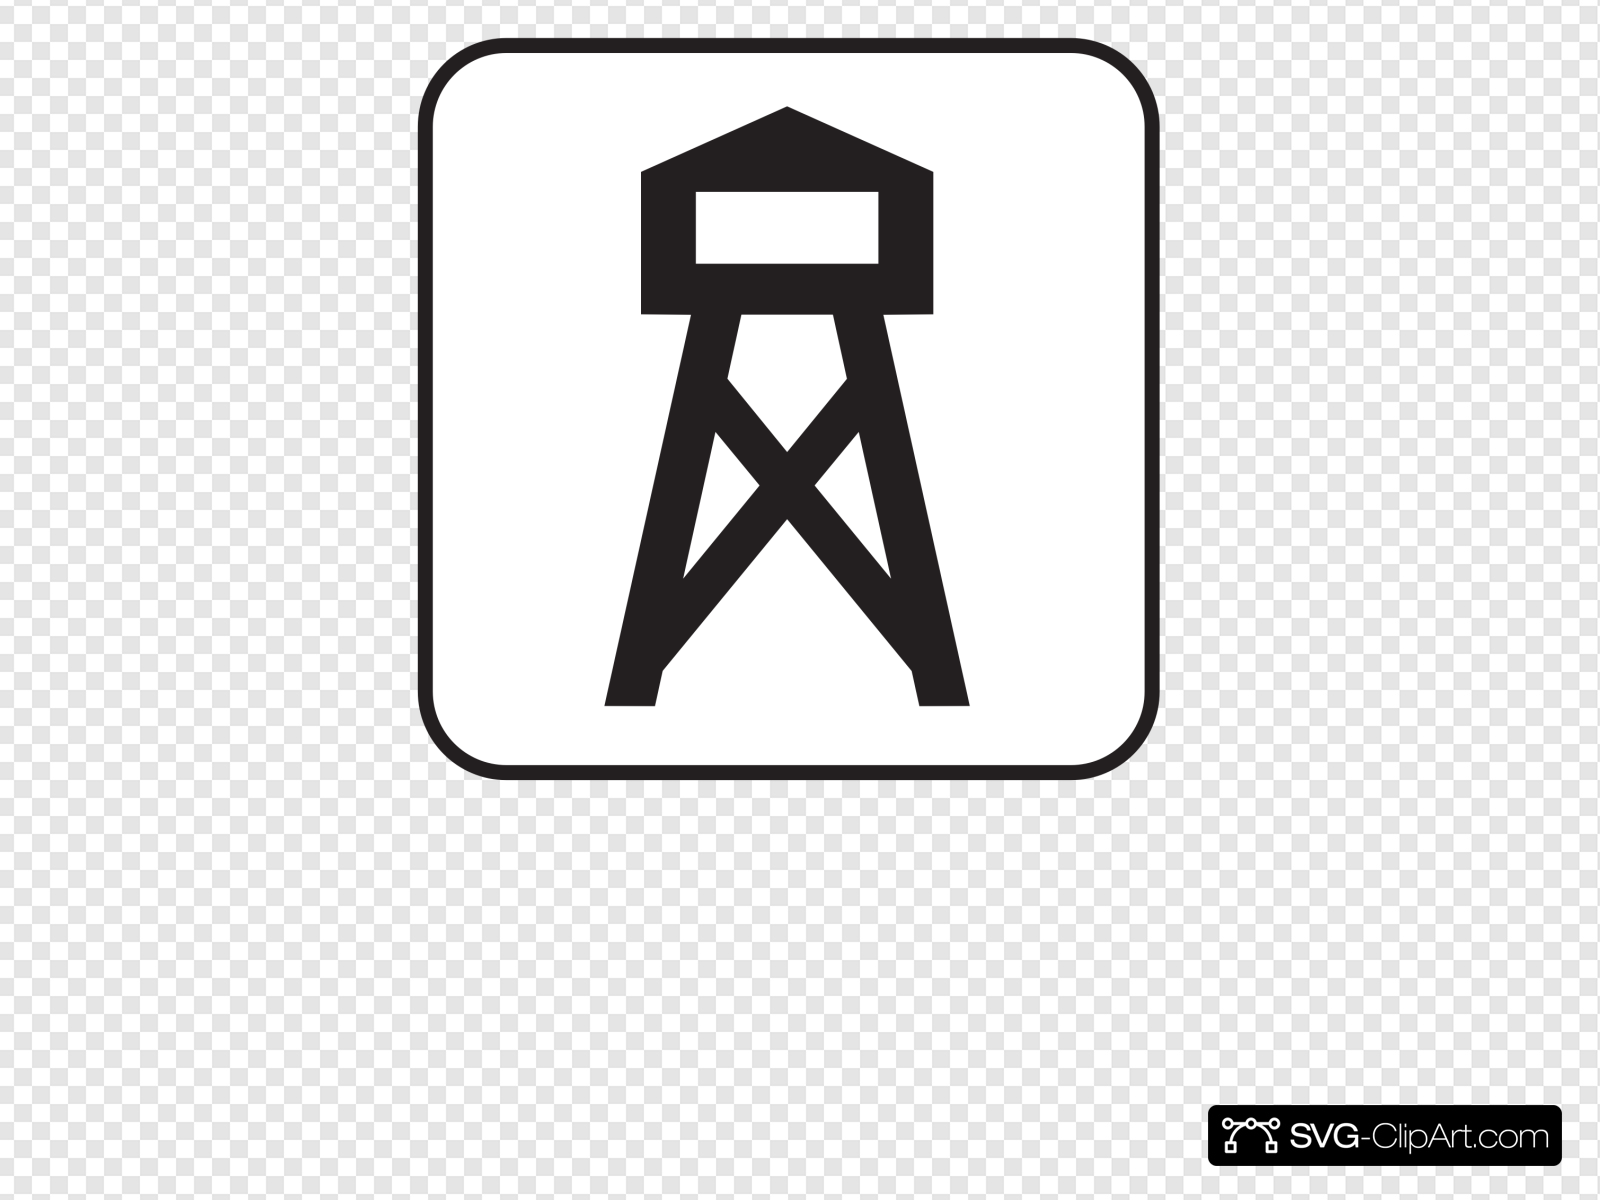 Lookout Look Out Tower White Clip art, Icon and SVG.